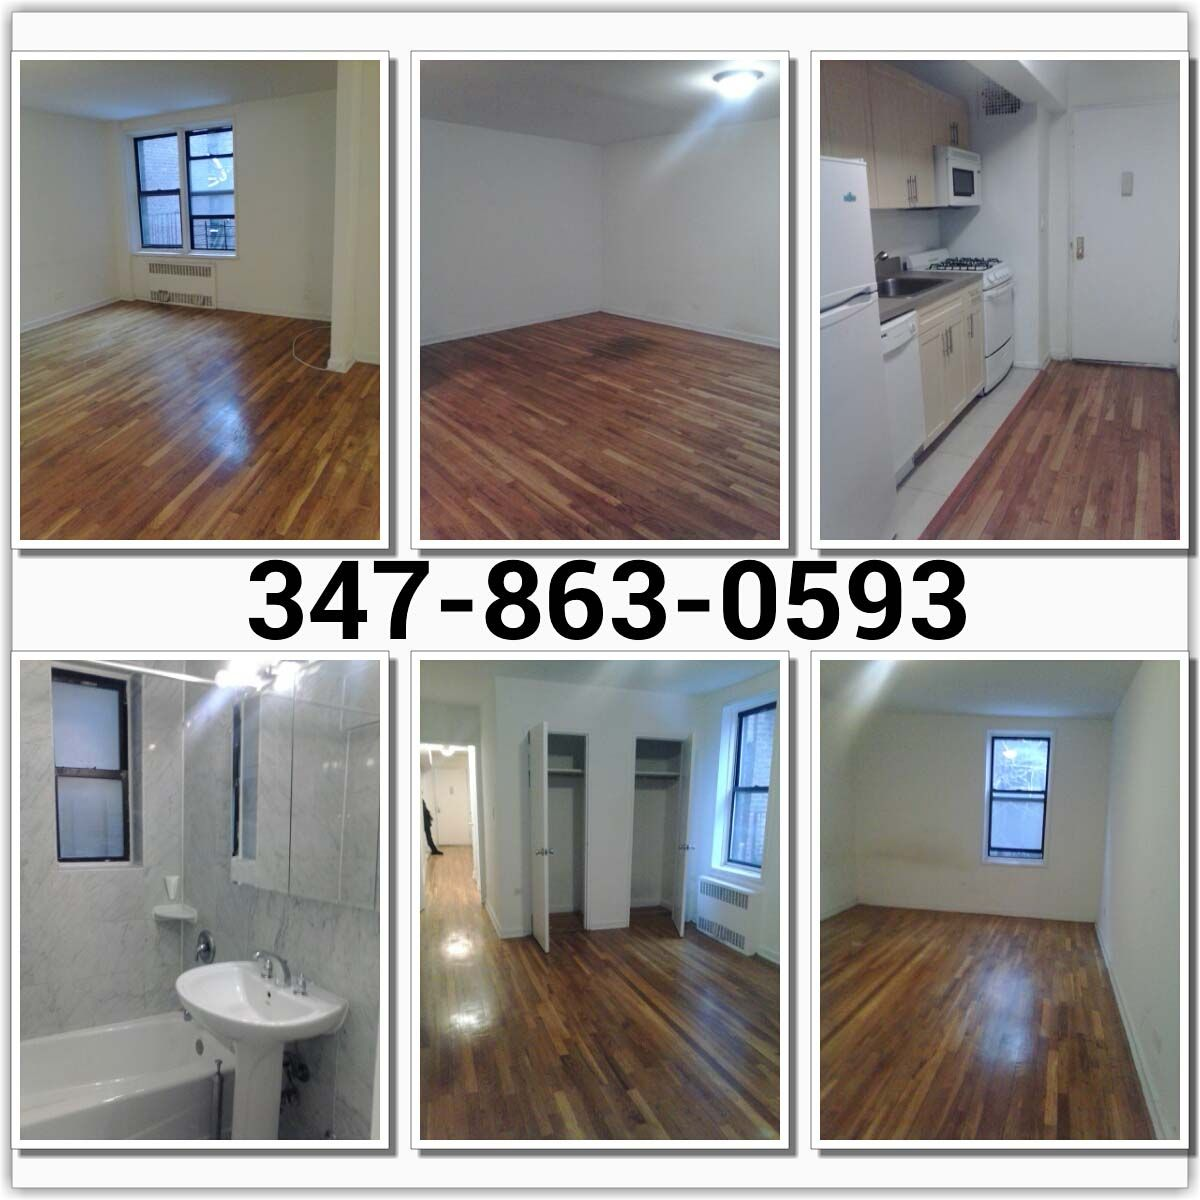 rent new floor appliances queens woodhavenjamaica jamaica queensny woodhaven ny for apartment in newly renovated bathroom apartments bedroom brand nyc